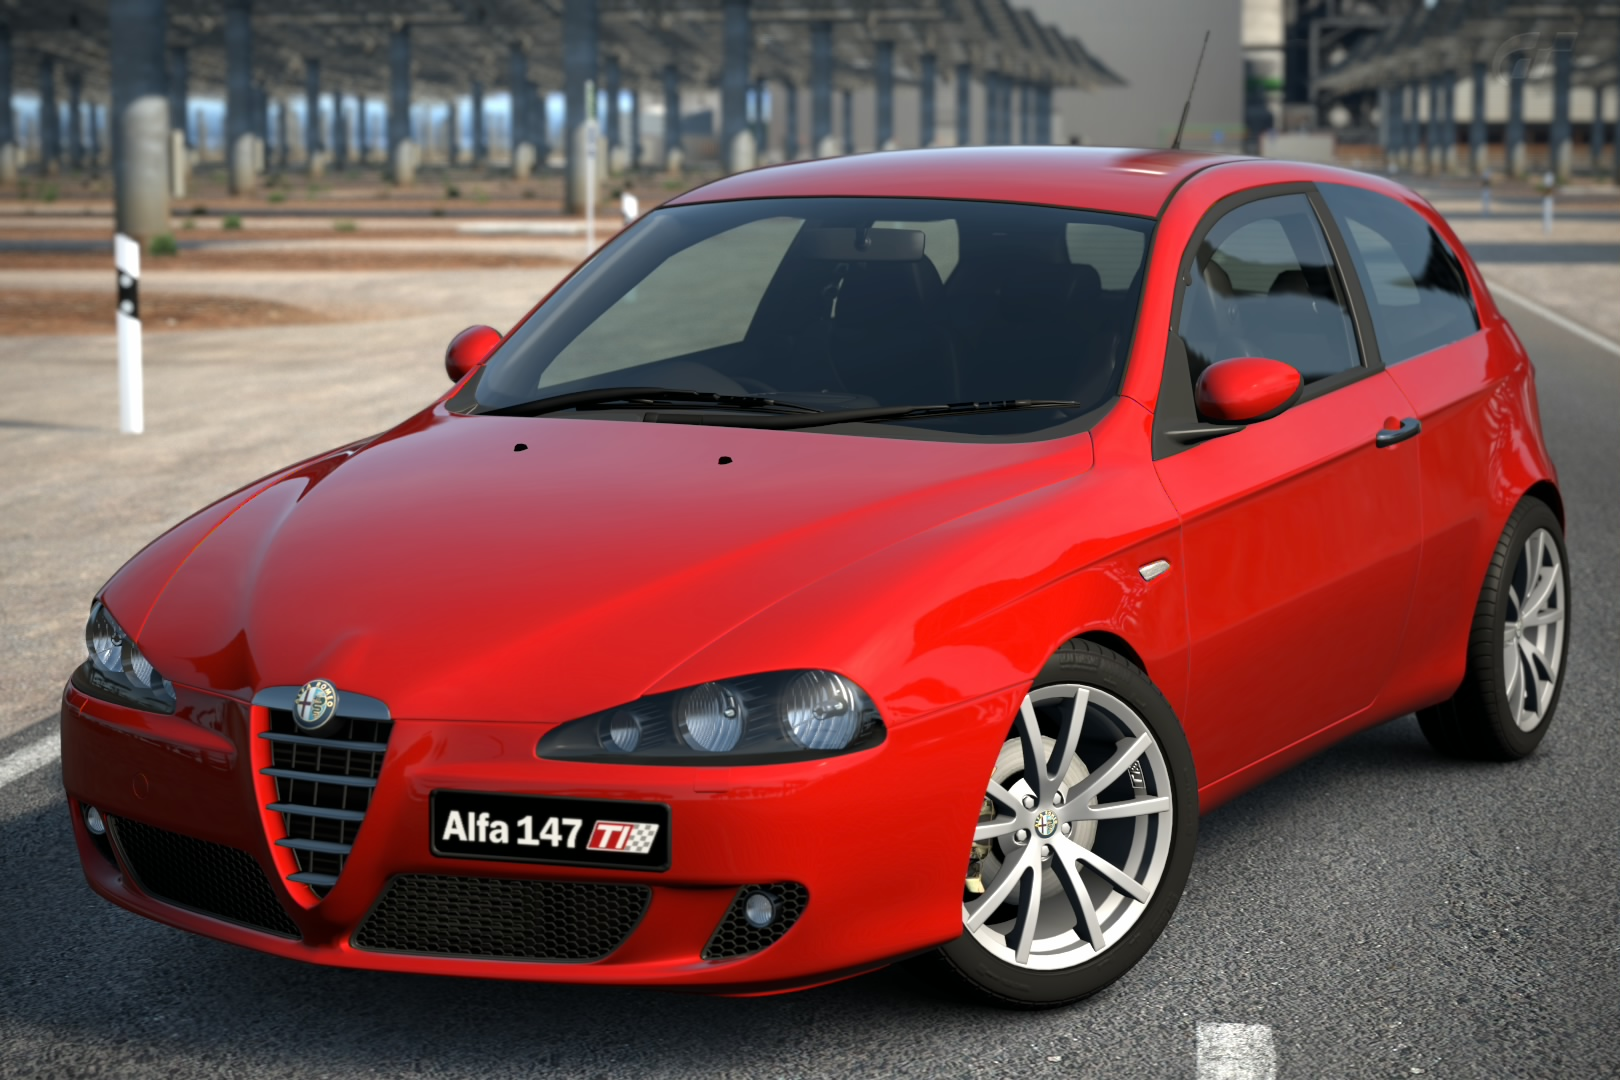 alfa romeo 147 ti 2 0 twin spark 39 06 gran turismo wiki fandom powered by wikia. Black Bedroom Furniture Sets. Home Design Ideas